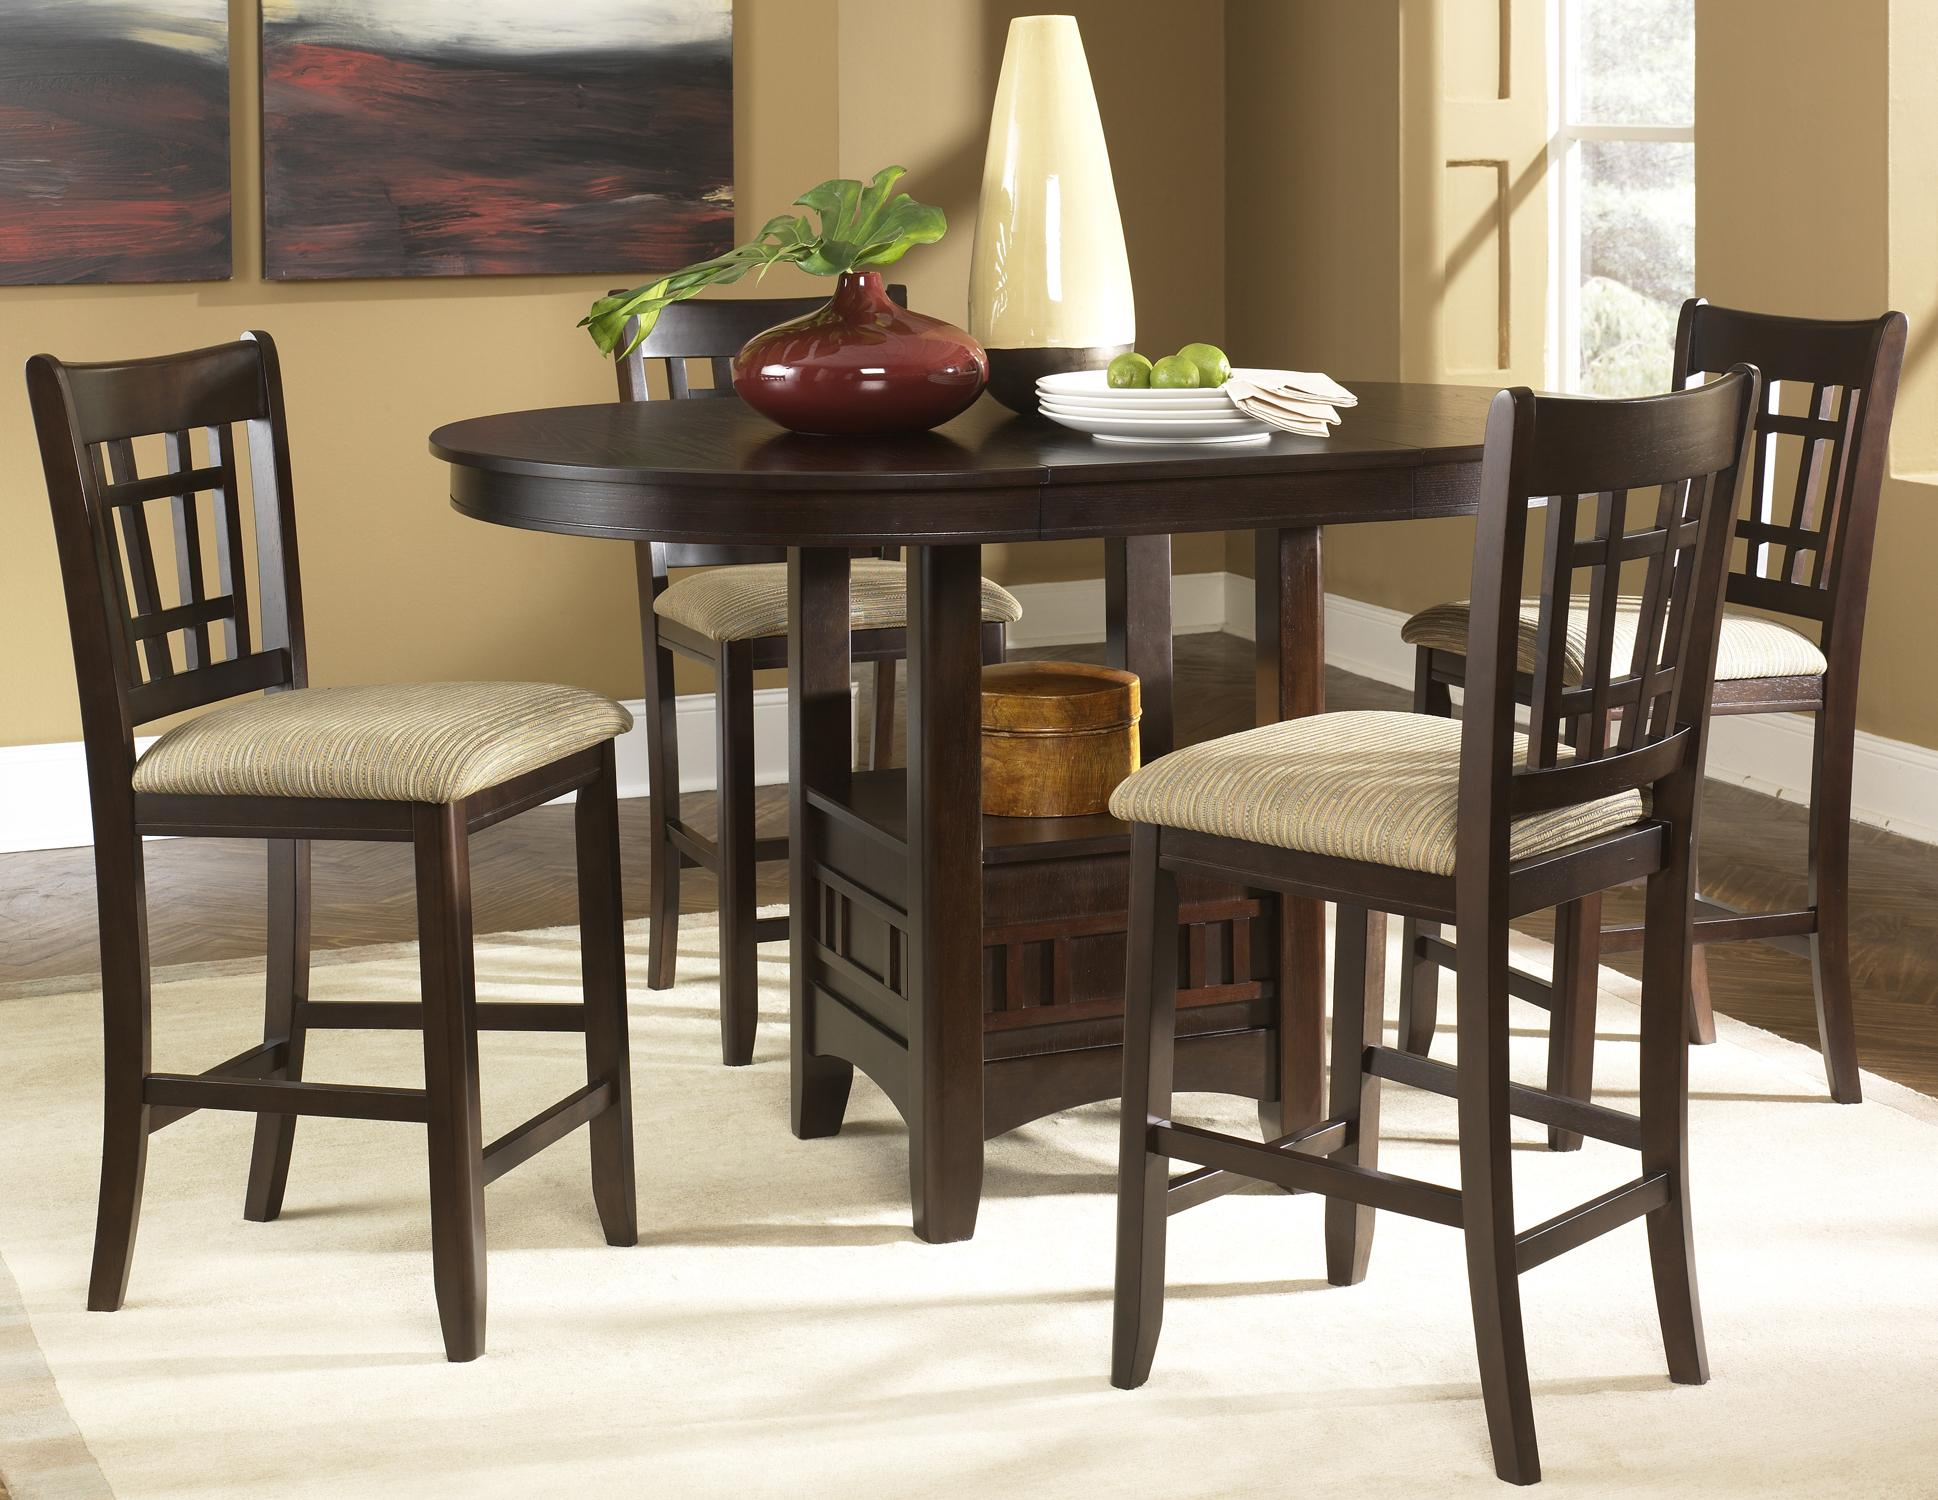 Trendy pub table and chairs liberty furniture santa rosa pub table - wayside furniture - pub tables uaiobtz